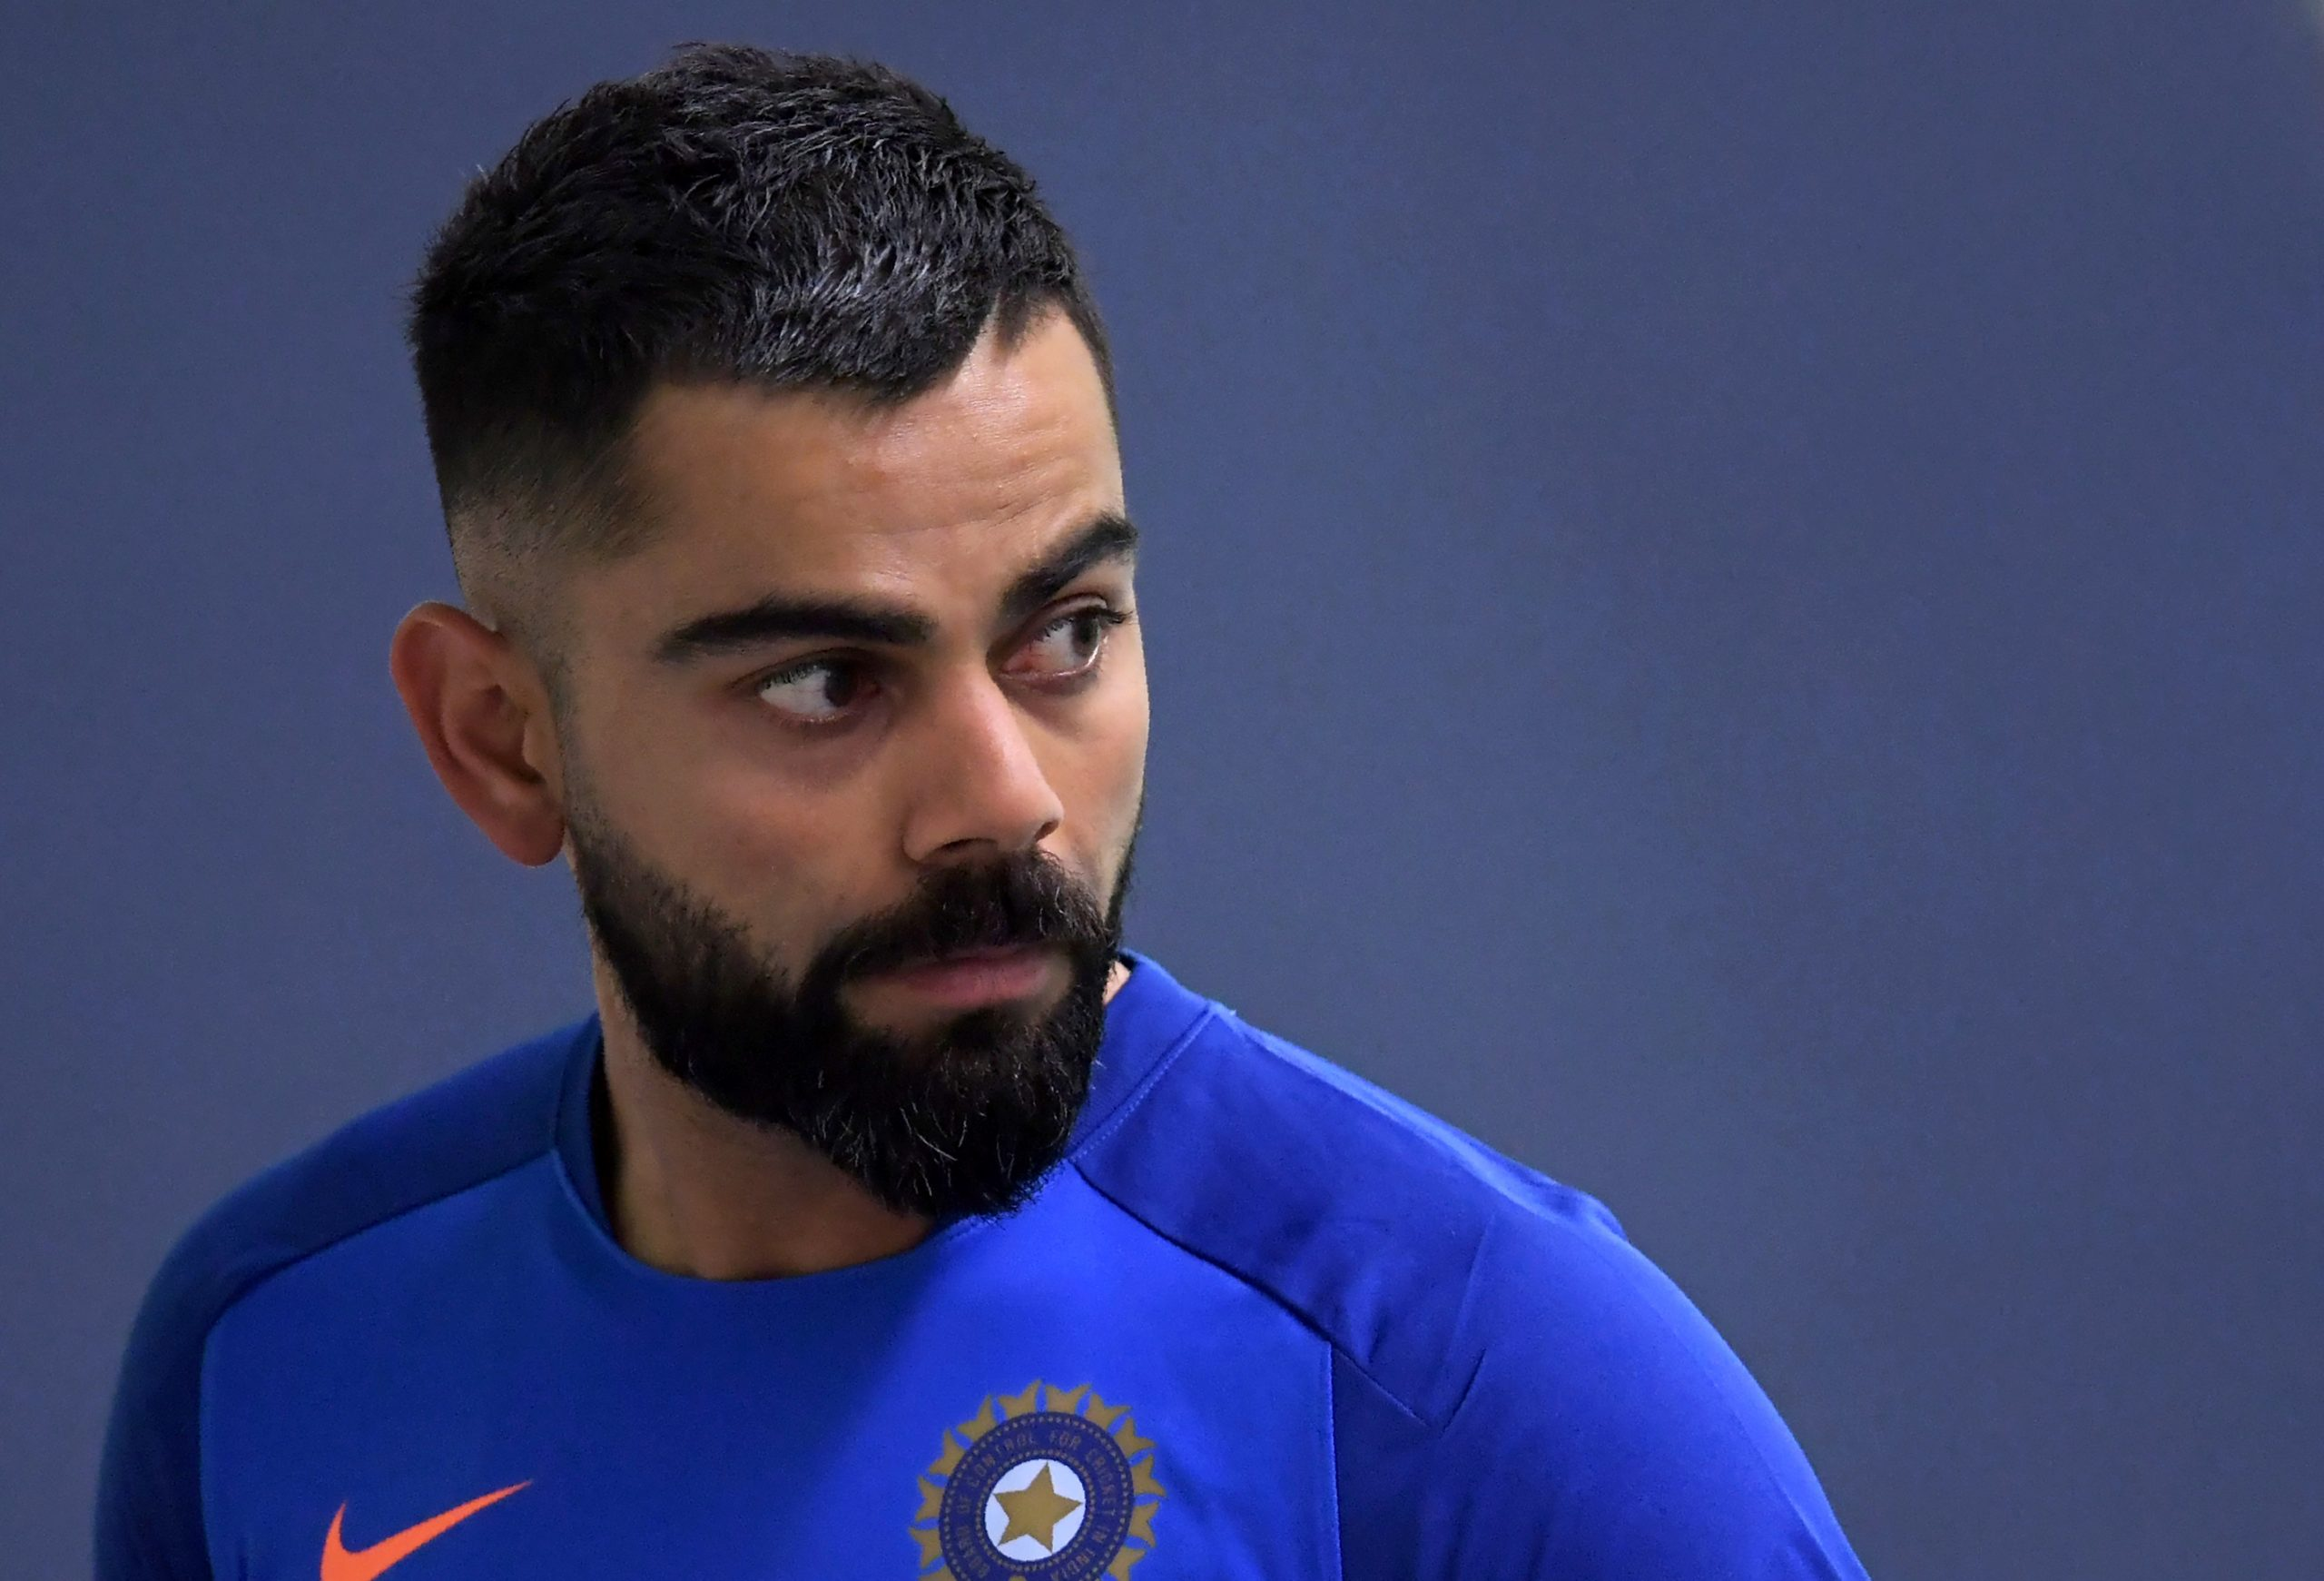 """With all eight teams now in quarantine in the UAE ahead of the September 19 start, the Royal Challengers Bangalore skipper Virat Kohli said: """"One mistake from us could literally spoil the whole tournament.""""      (DIBYANGSHU SARKAR/AFP via Getty Images)"""